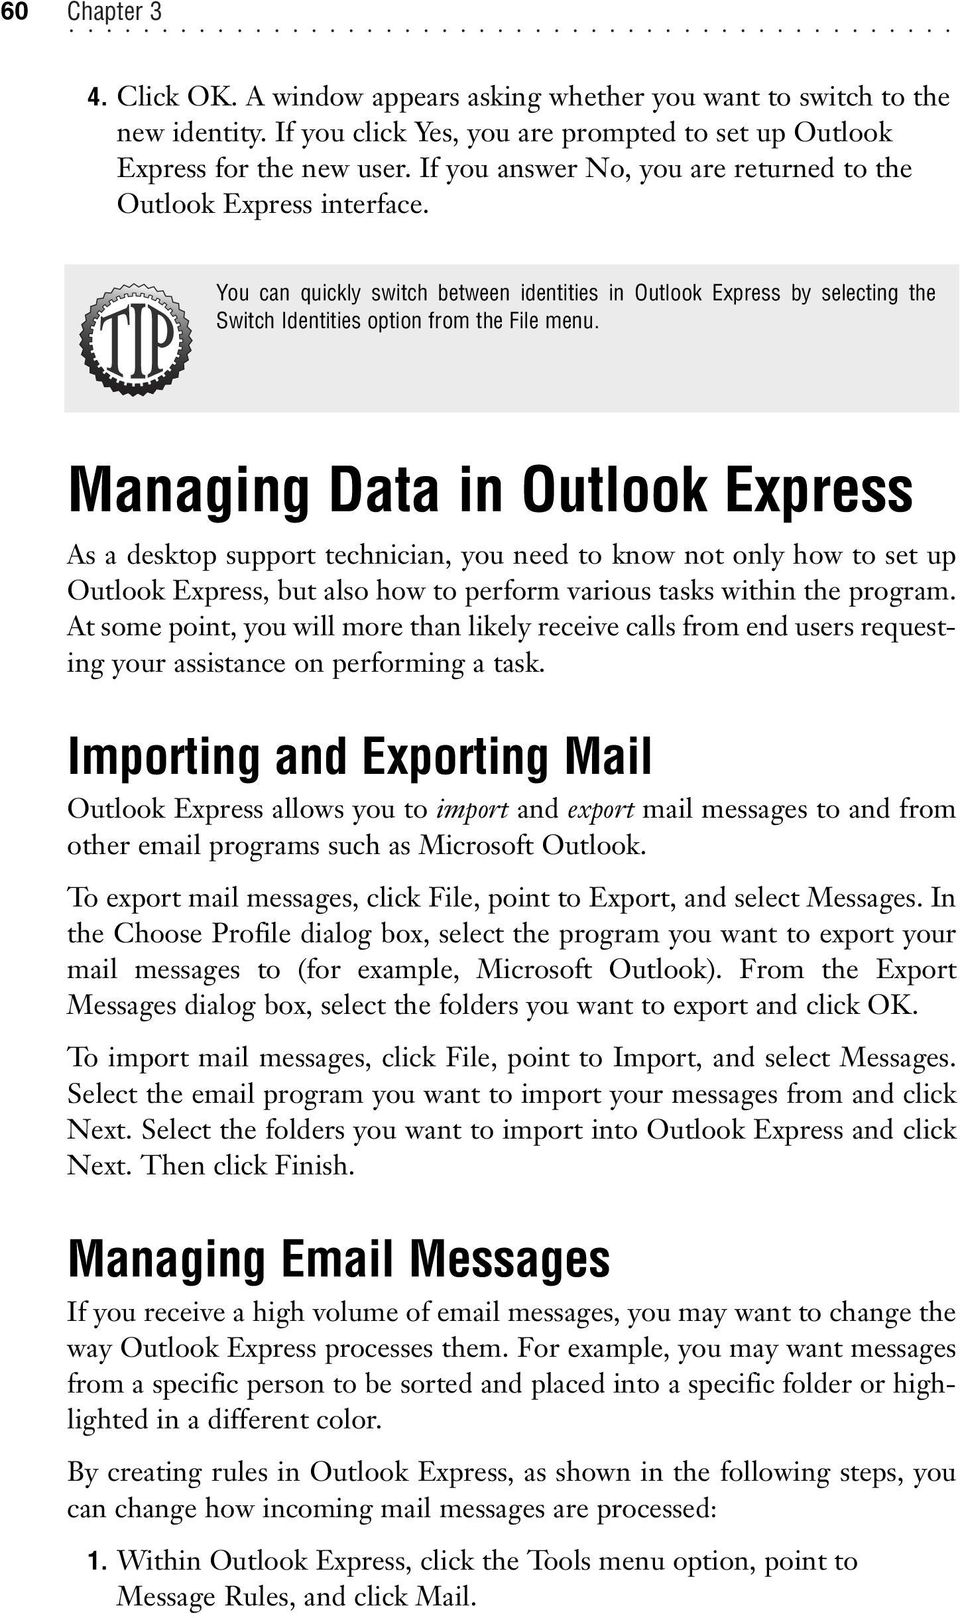 Managing Data in Outlook Express As a desktop support technician, you need to know not only how to set up Outlook Express, but also how to perform various tasks within the program.